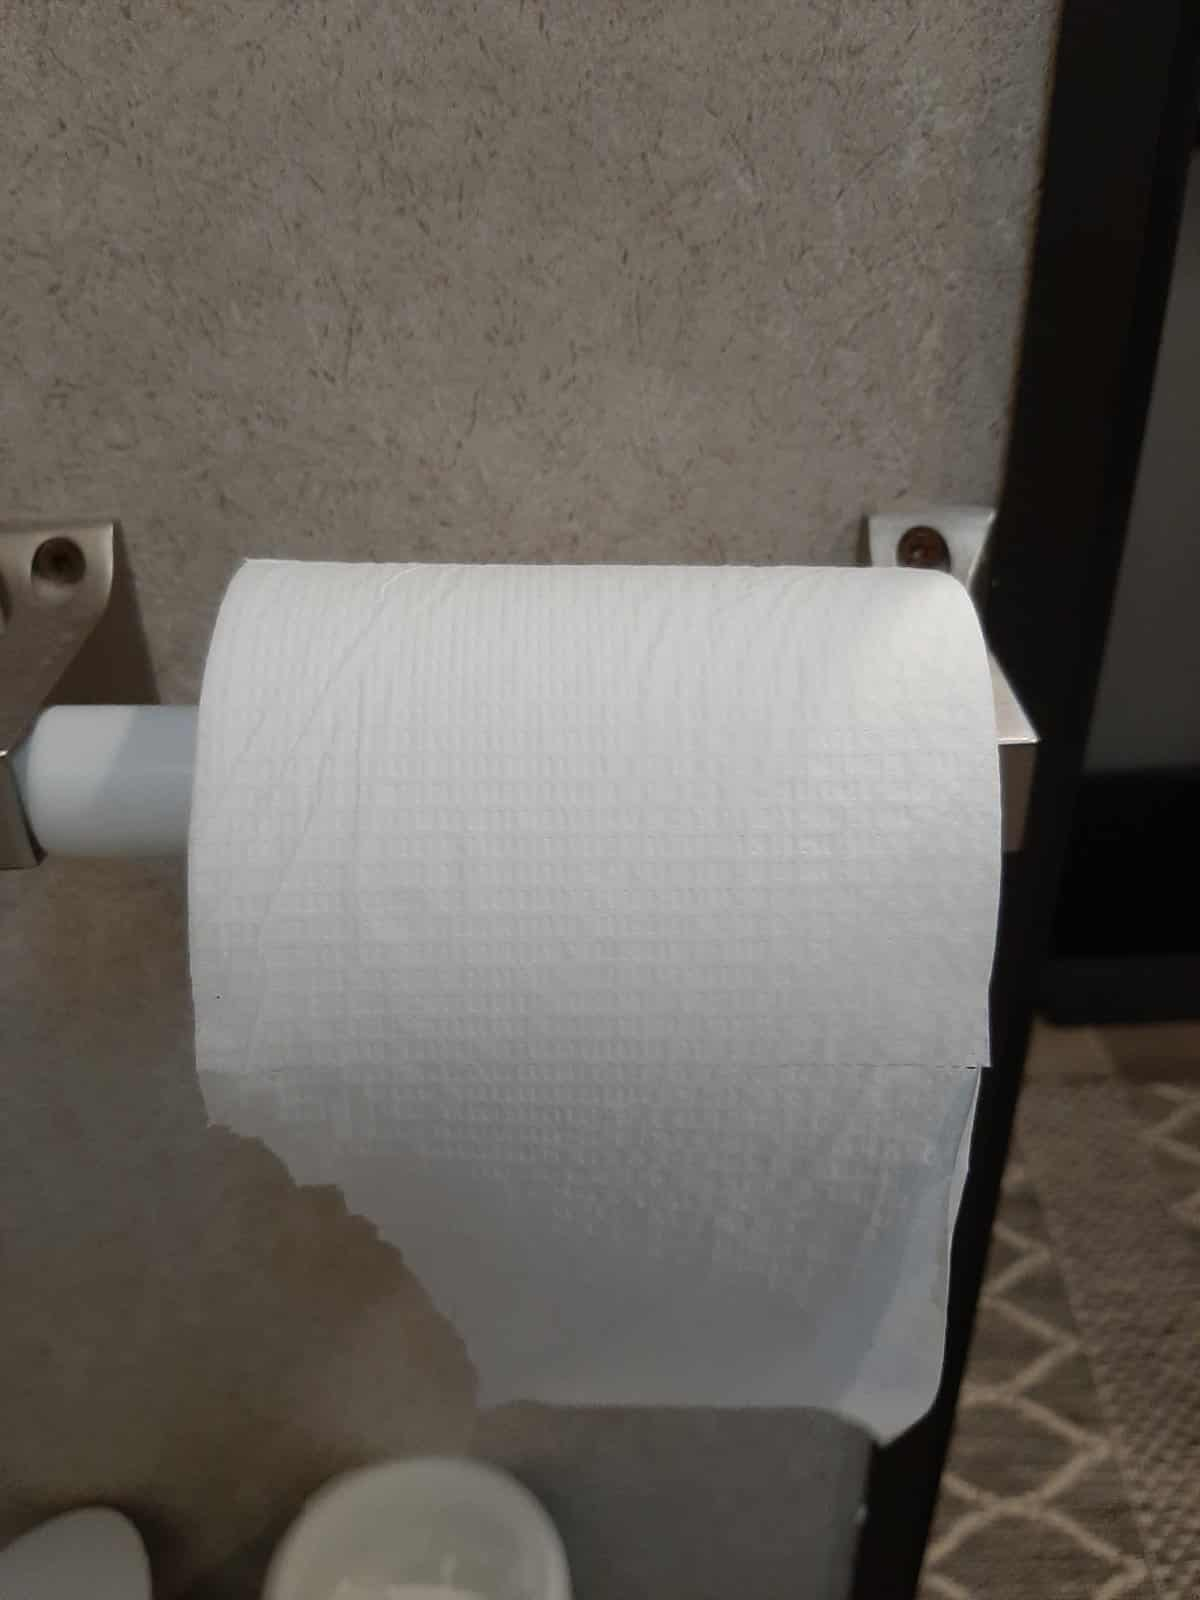 Why RV Toilet Paper